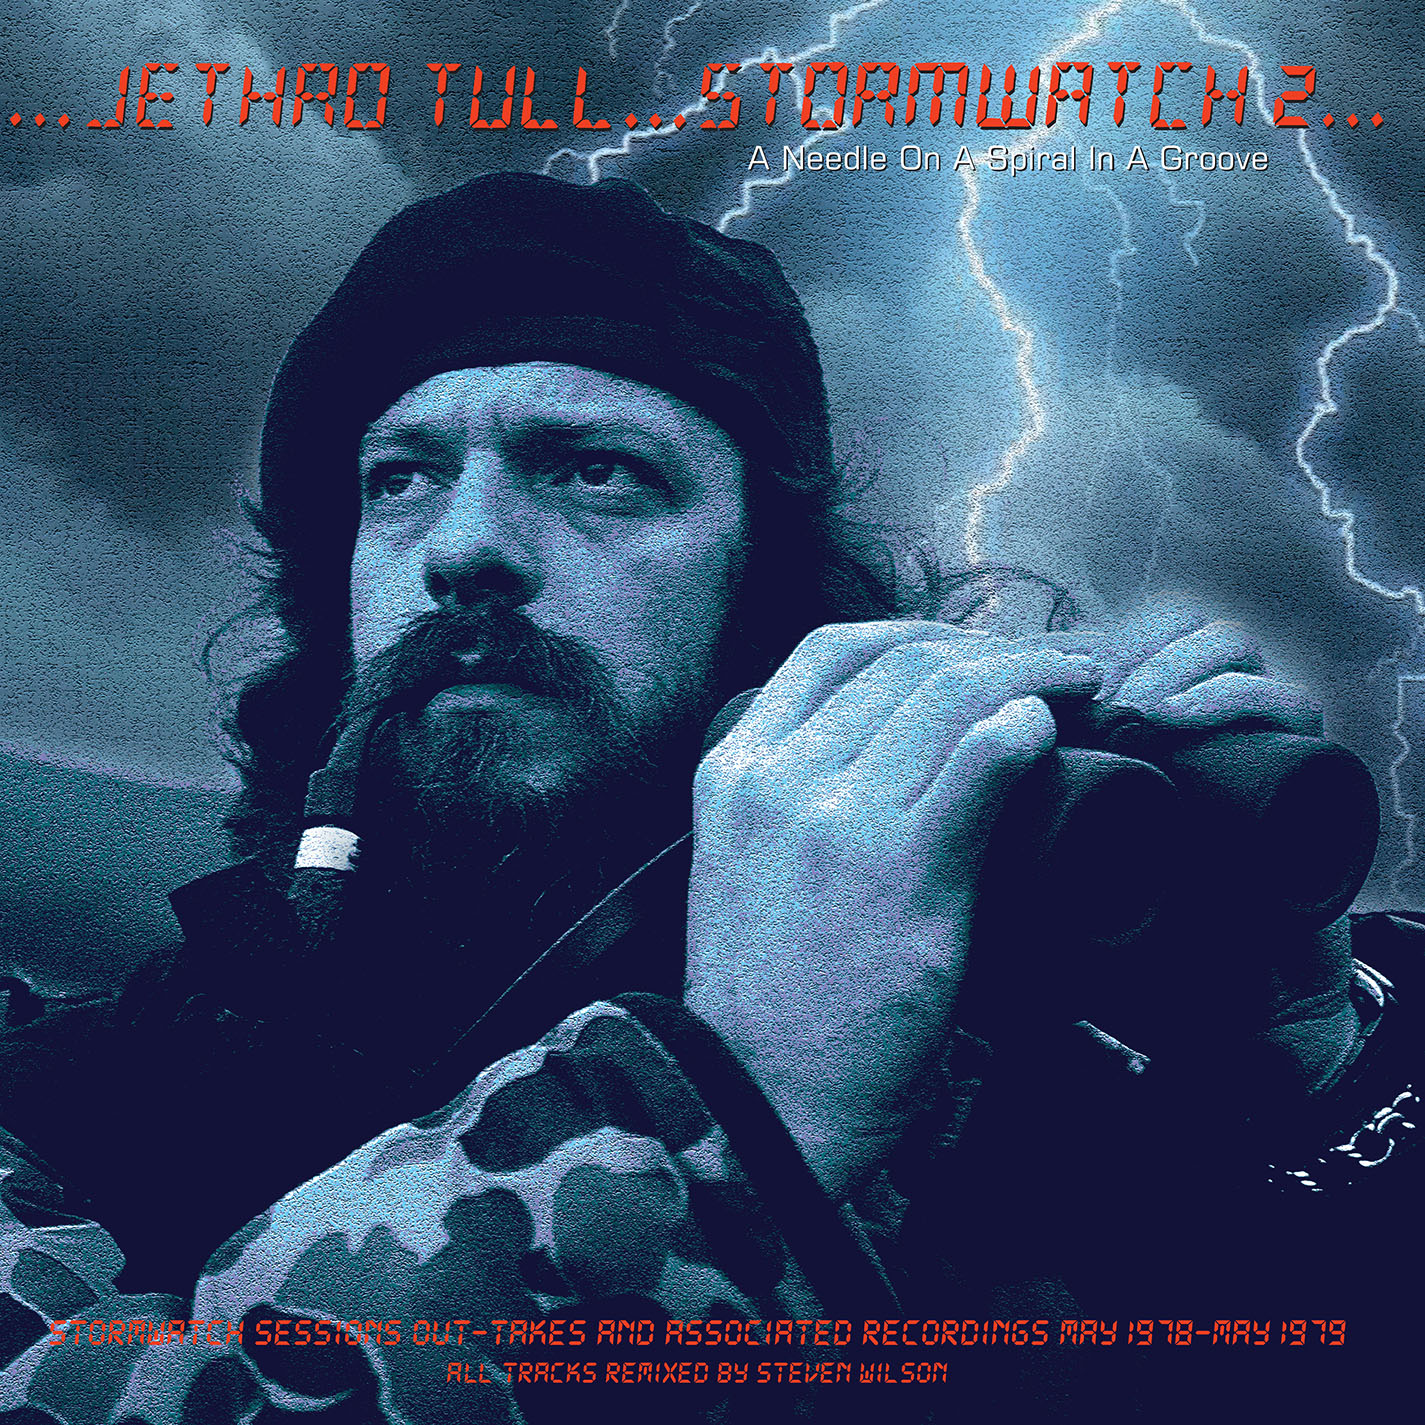 Jethro Tull - Stormwatch 2 [RSD Drops Aug 2020]